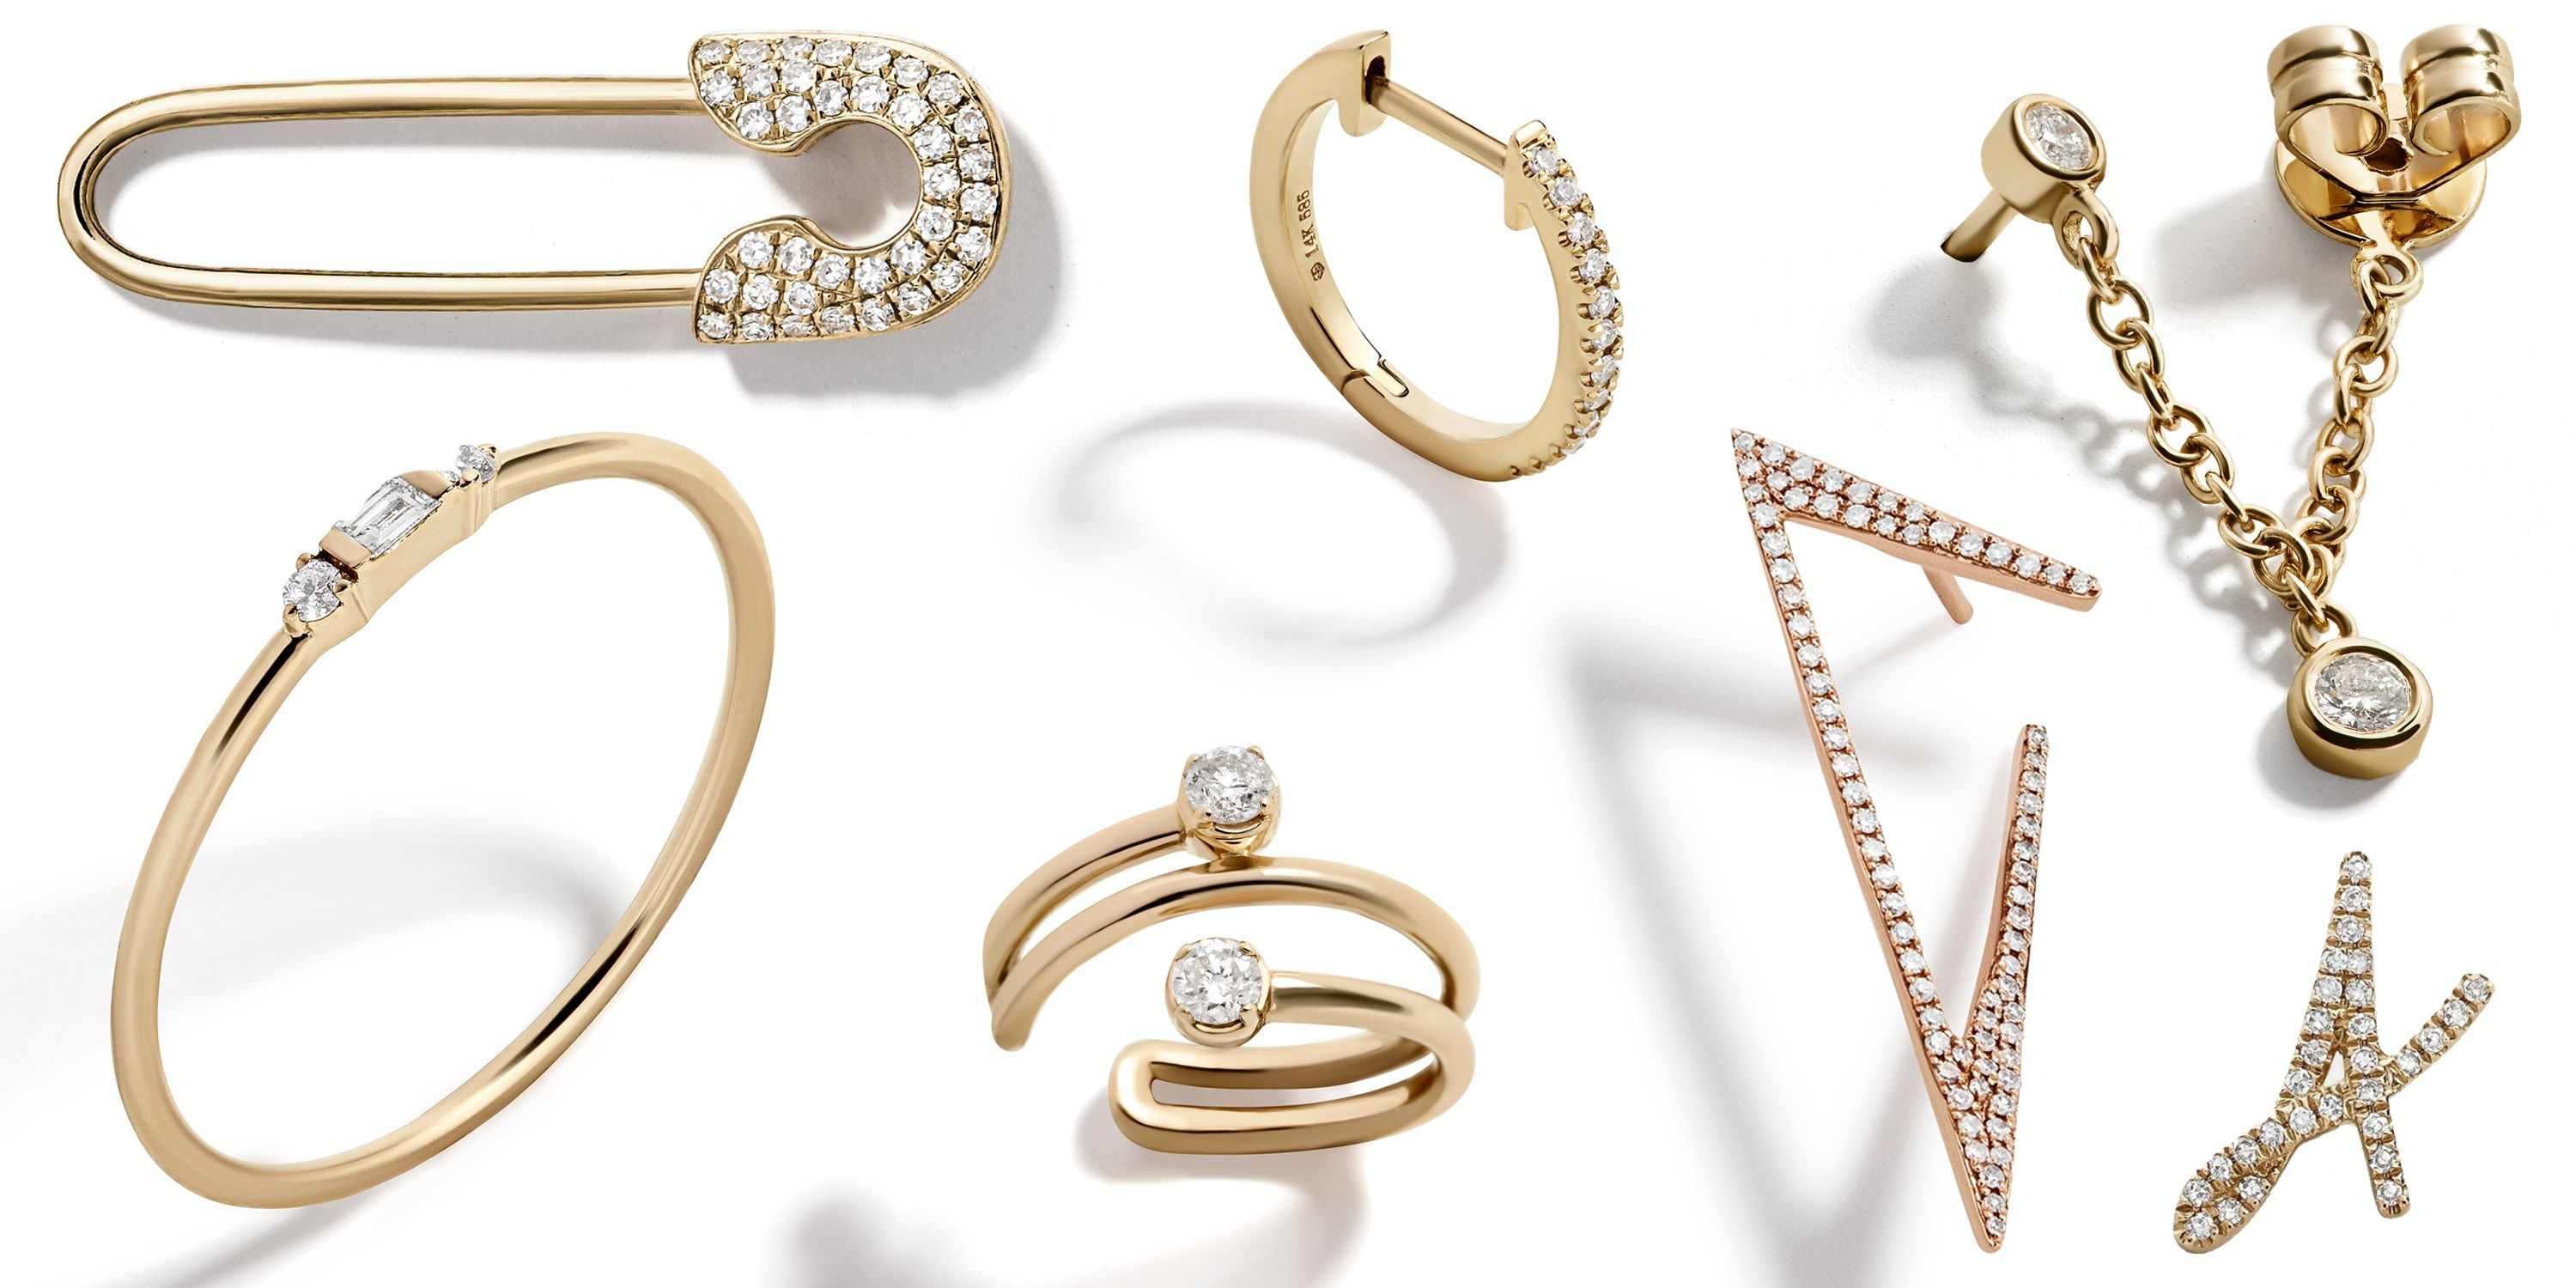 BaubleBar Launches Fine Jewelry—and It's Affordable